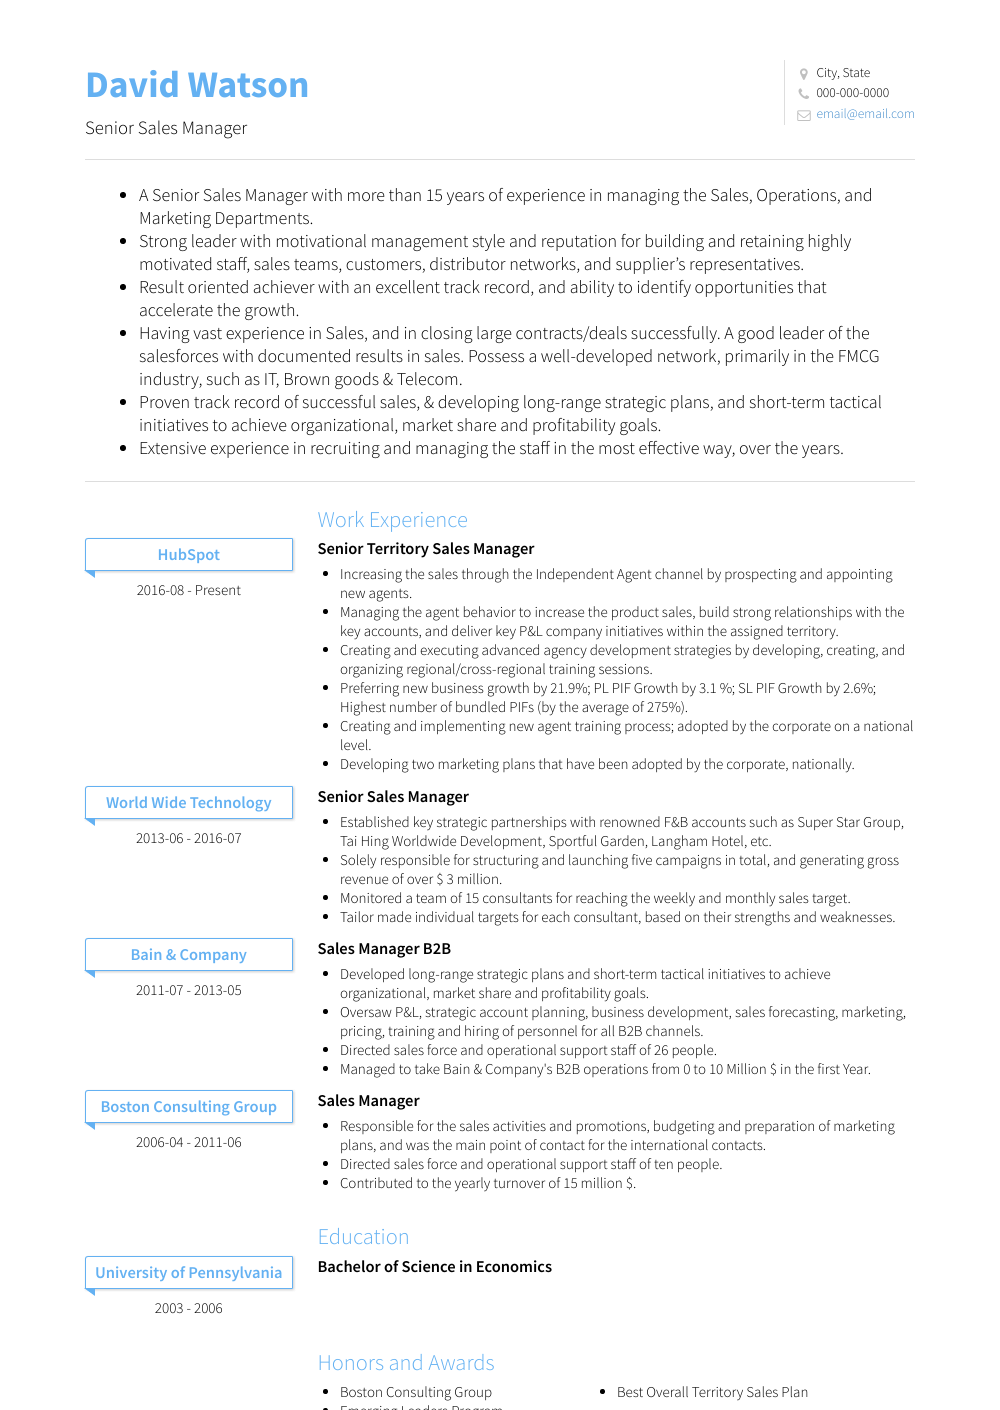 Senior Sales Manager Resume Sample and Template